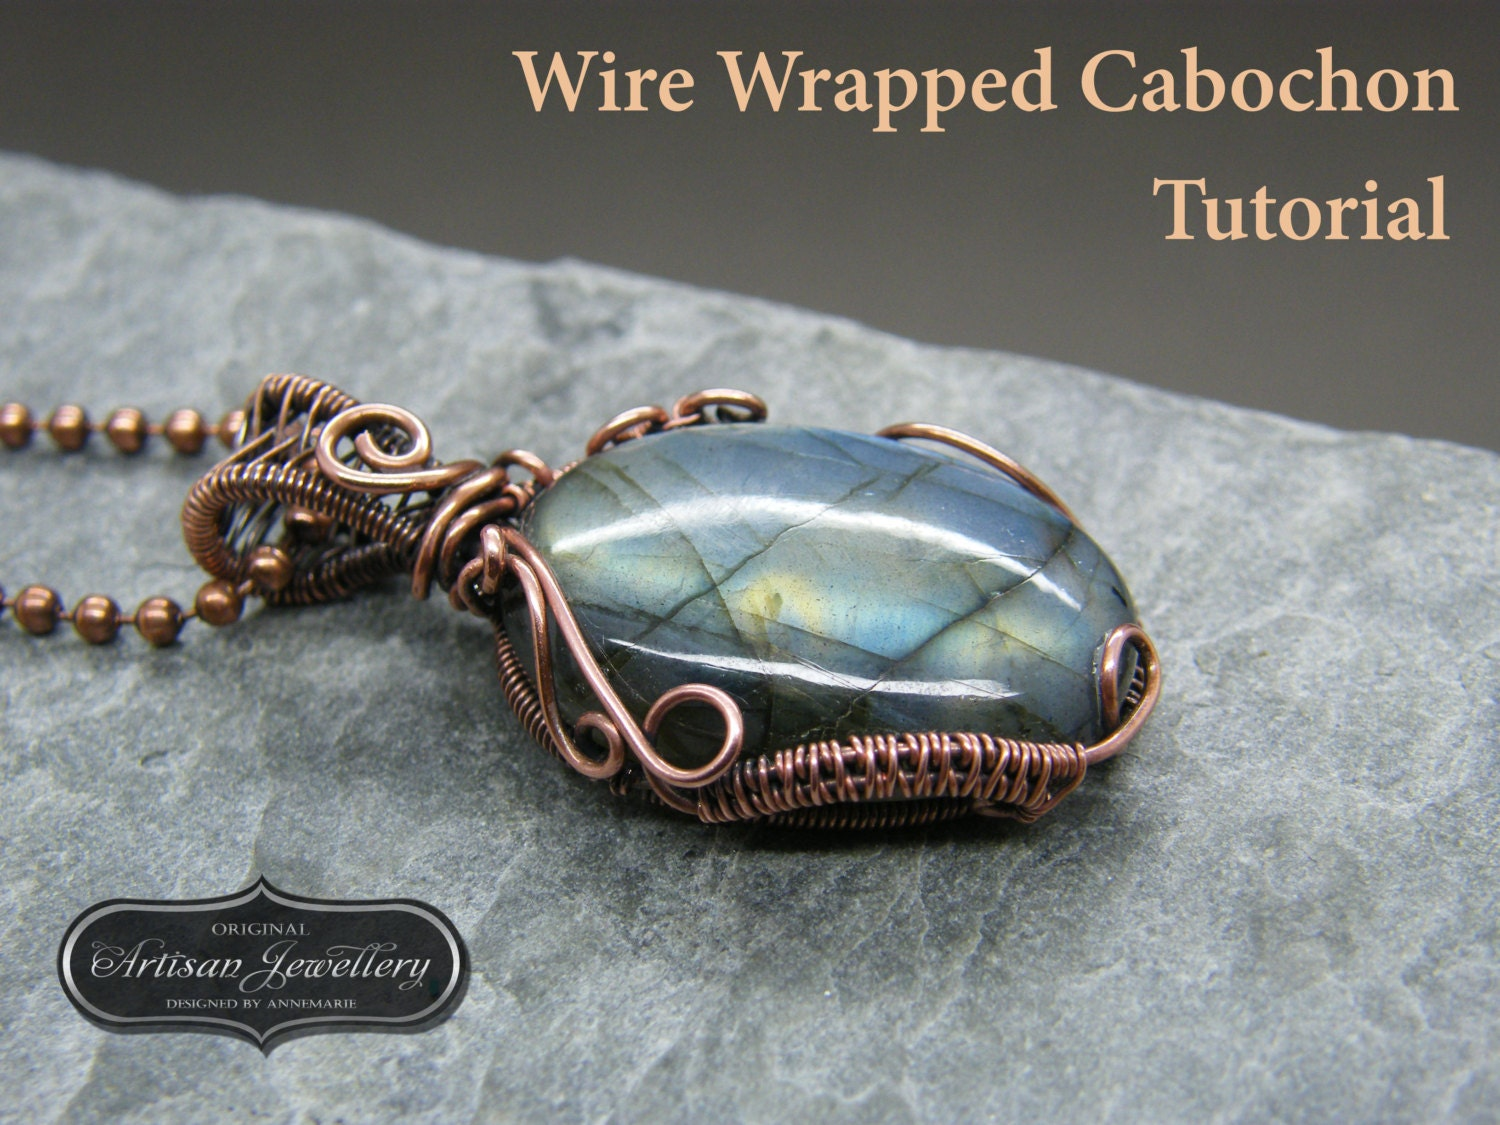 Wire wrapped pendant tutorial Cabochon setting Jewelry kit | Etsy